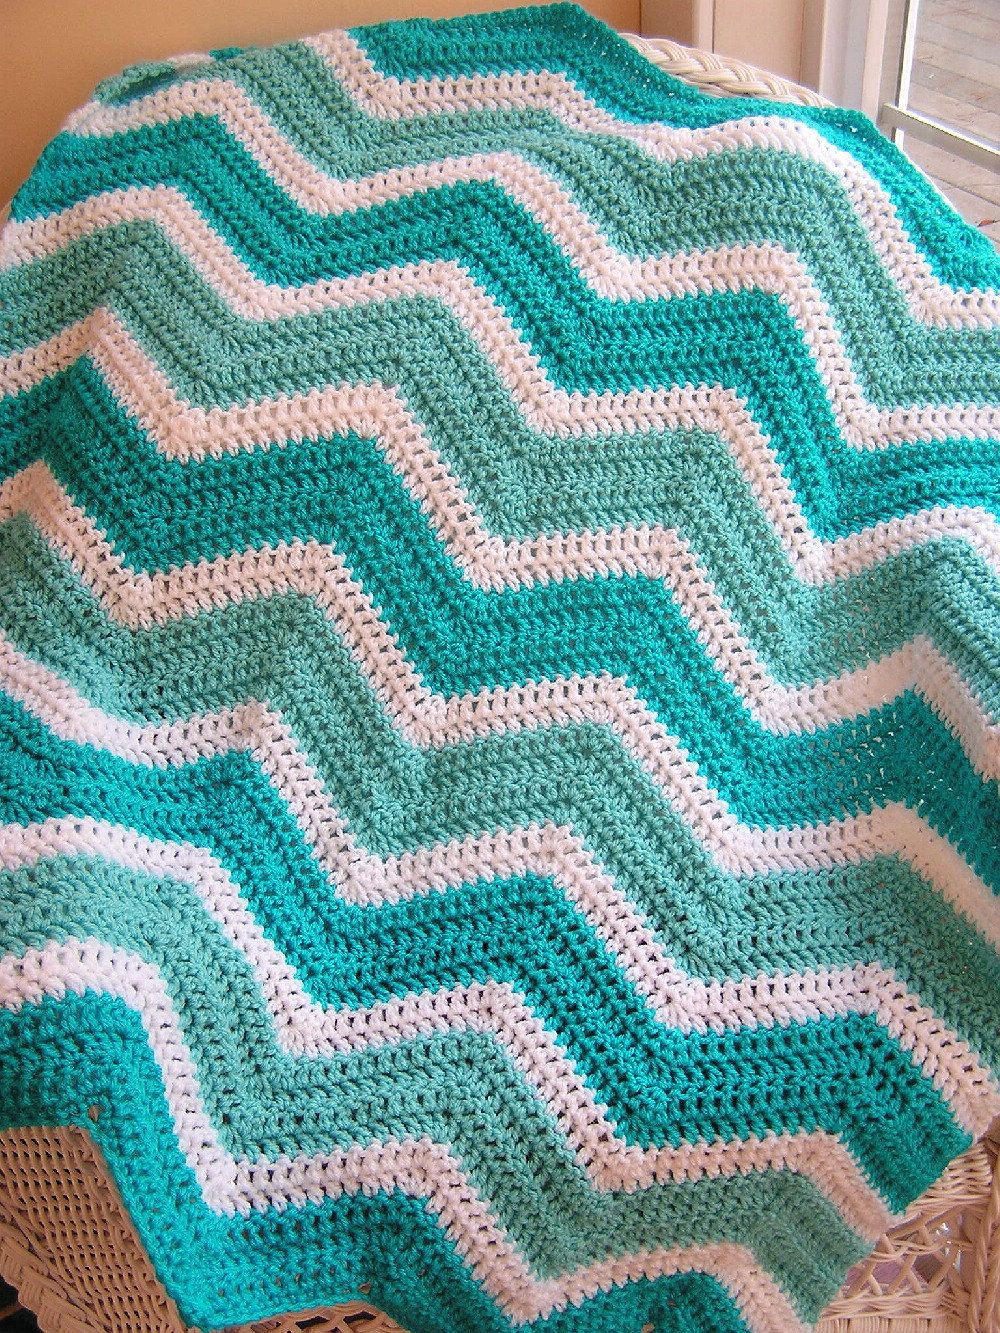 Chevron Zig Zag Baby Blanket Afghan Crochet Knit Wrap Lap Wheelchair Ripple  Stripes Lion Brand Vanna